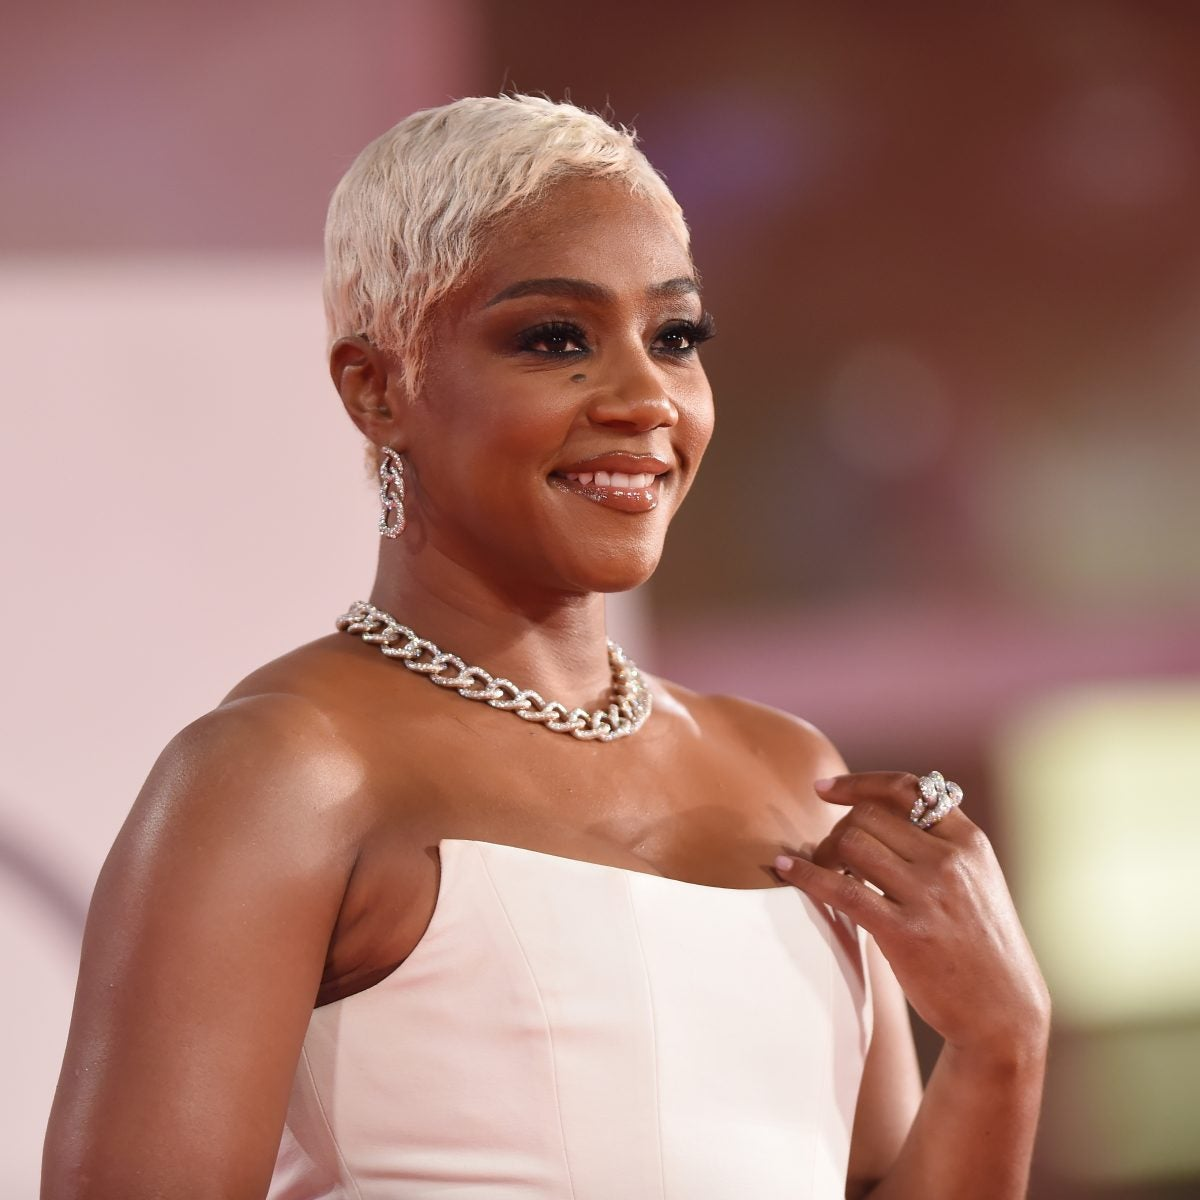 """Bald & Beautiful! Tiffany Haddish And Yvonne Orji Get Real About Big Chops on """"Red Table Talk"""""""